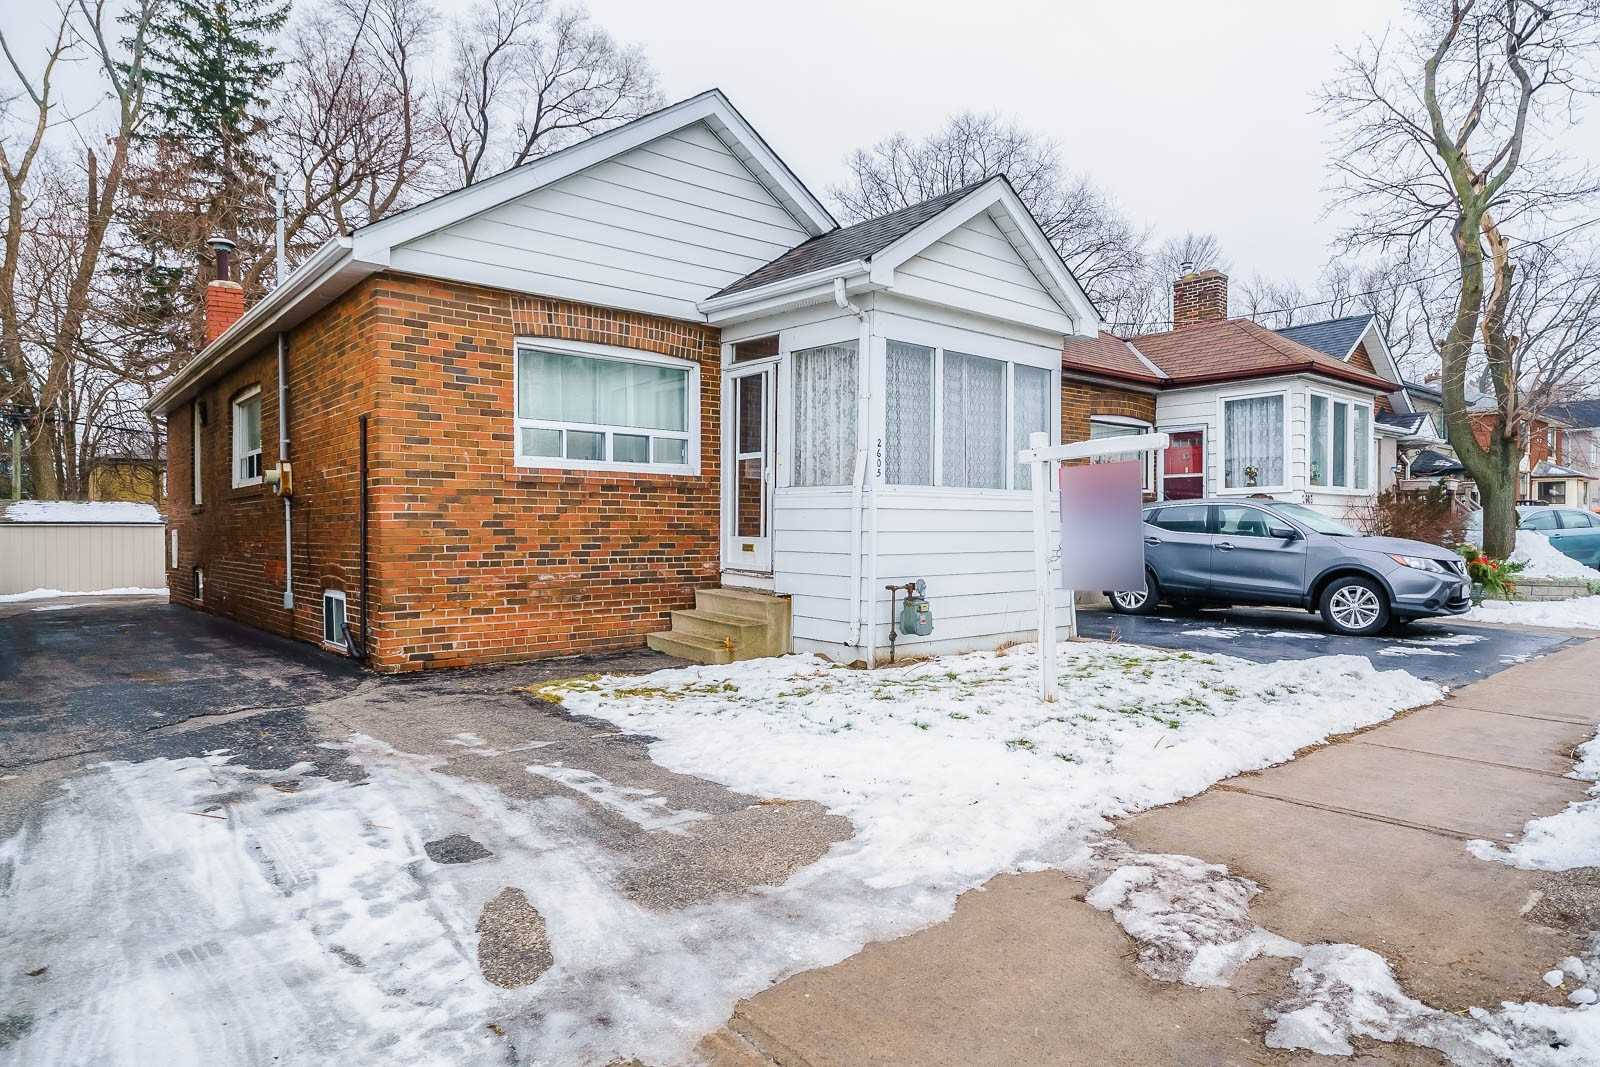 pictures of house for sale MLS: E5083542 located at 2605 Kingston Rd, Toronto M1M1M1